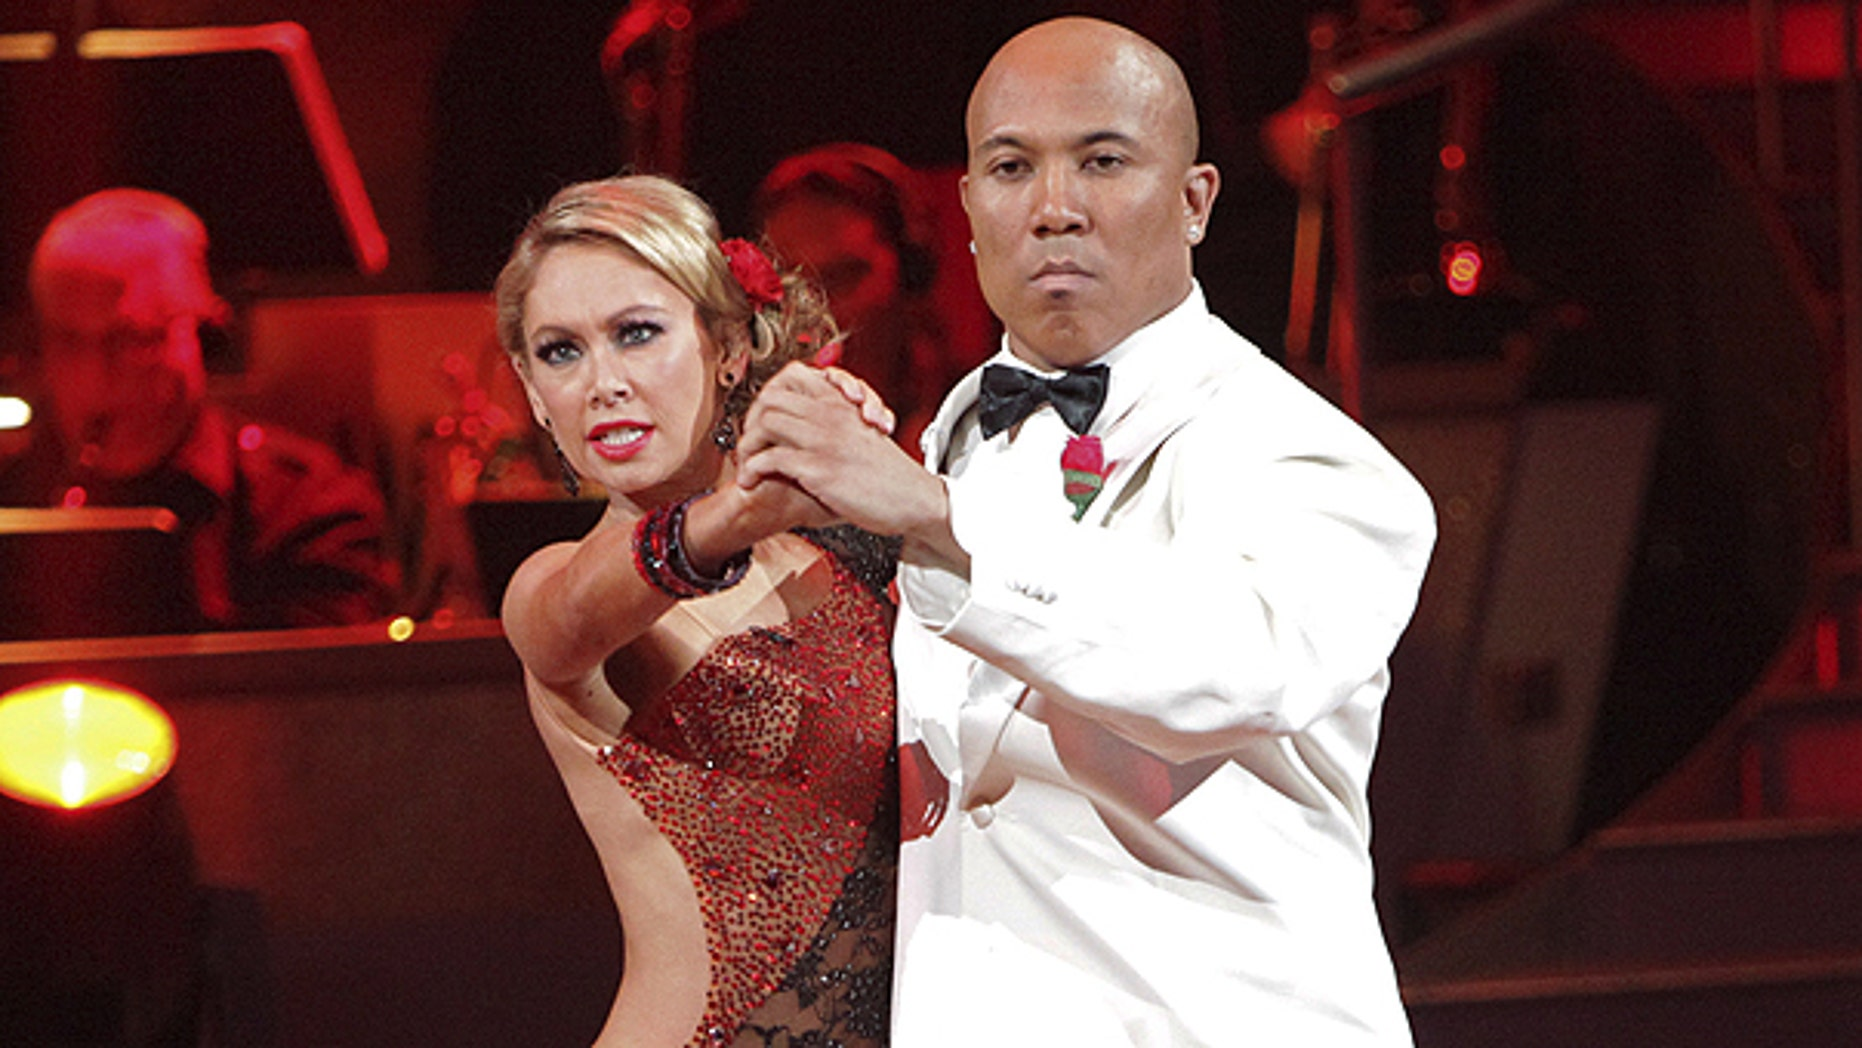 May 2: In this publicity image released by ABC, Hines Ward, right, and his partner Kym Johnson perform on the celebrity dance competition series 'Dancing with the Stars' in Los Angeles.